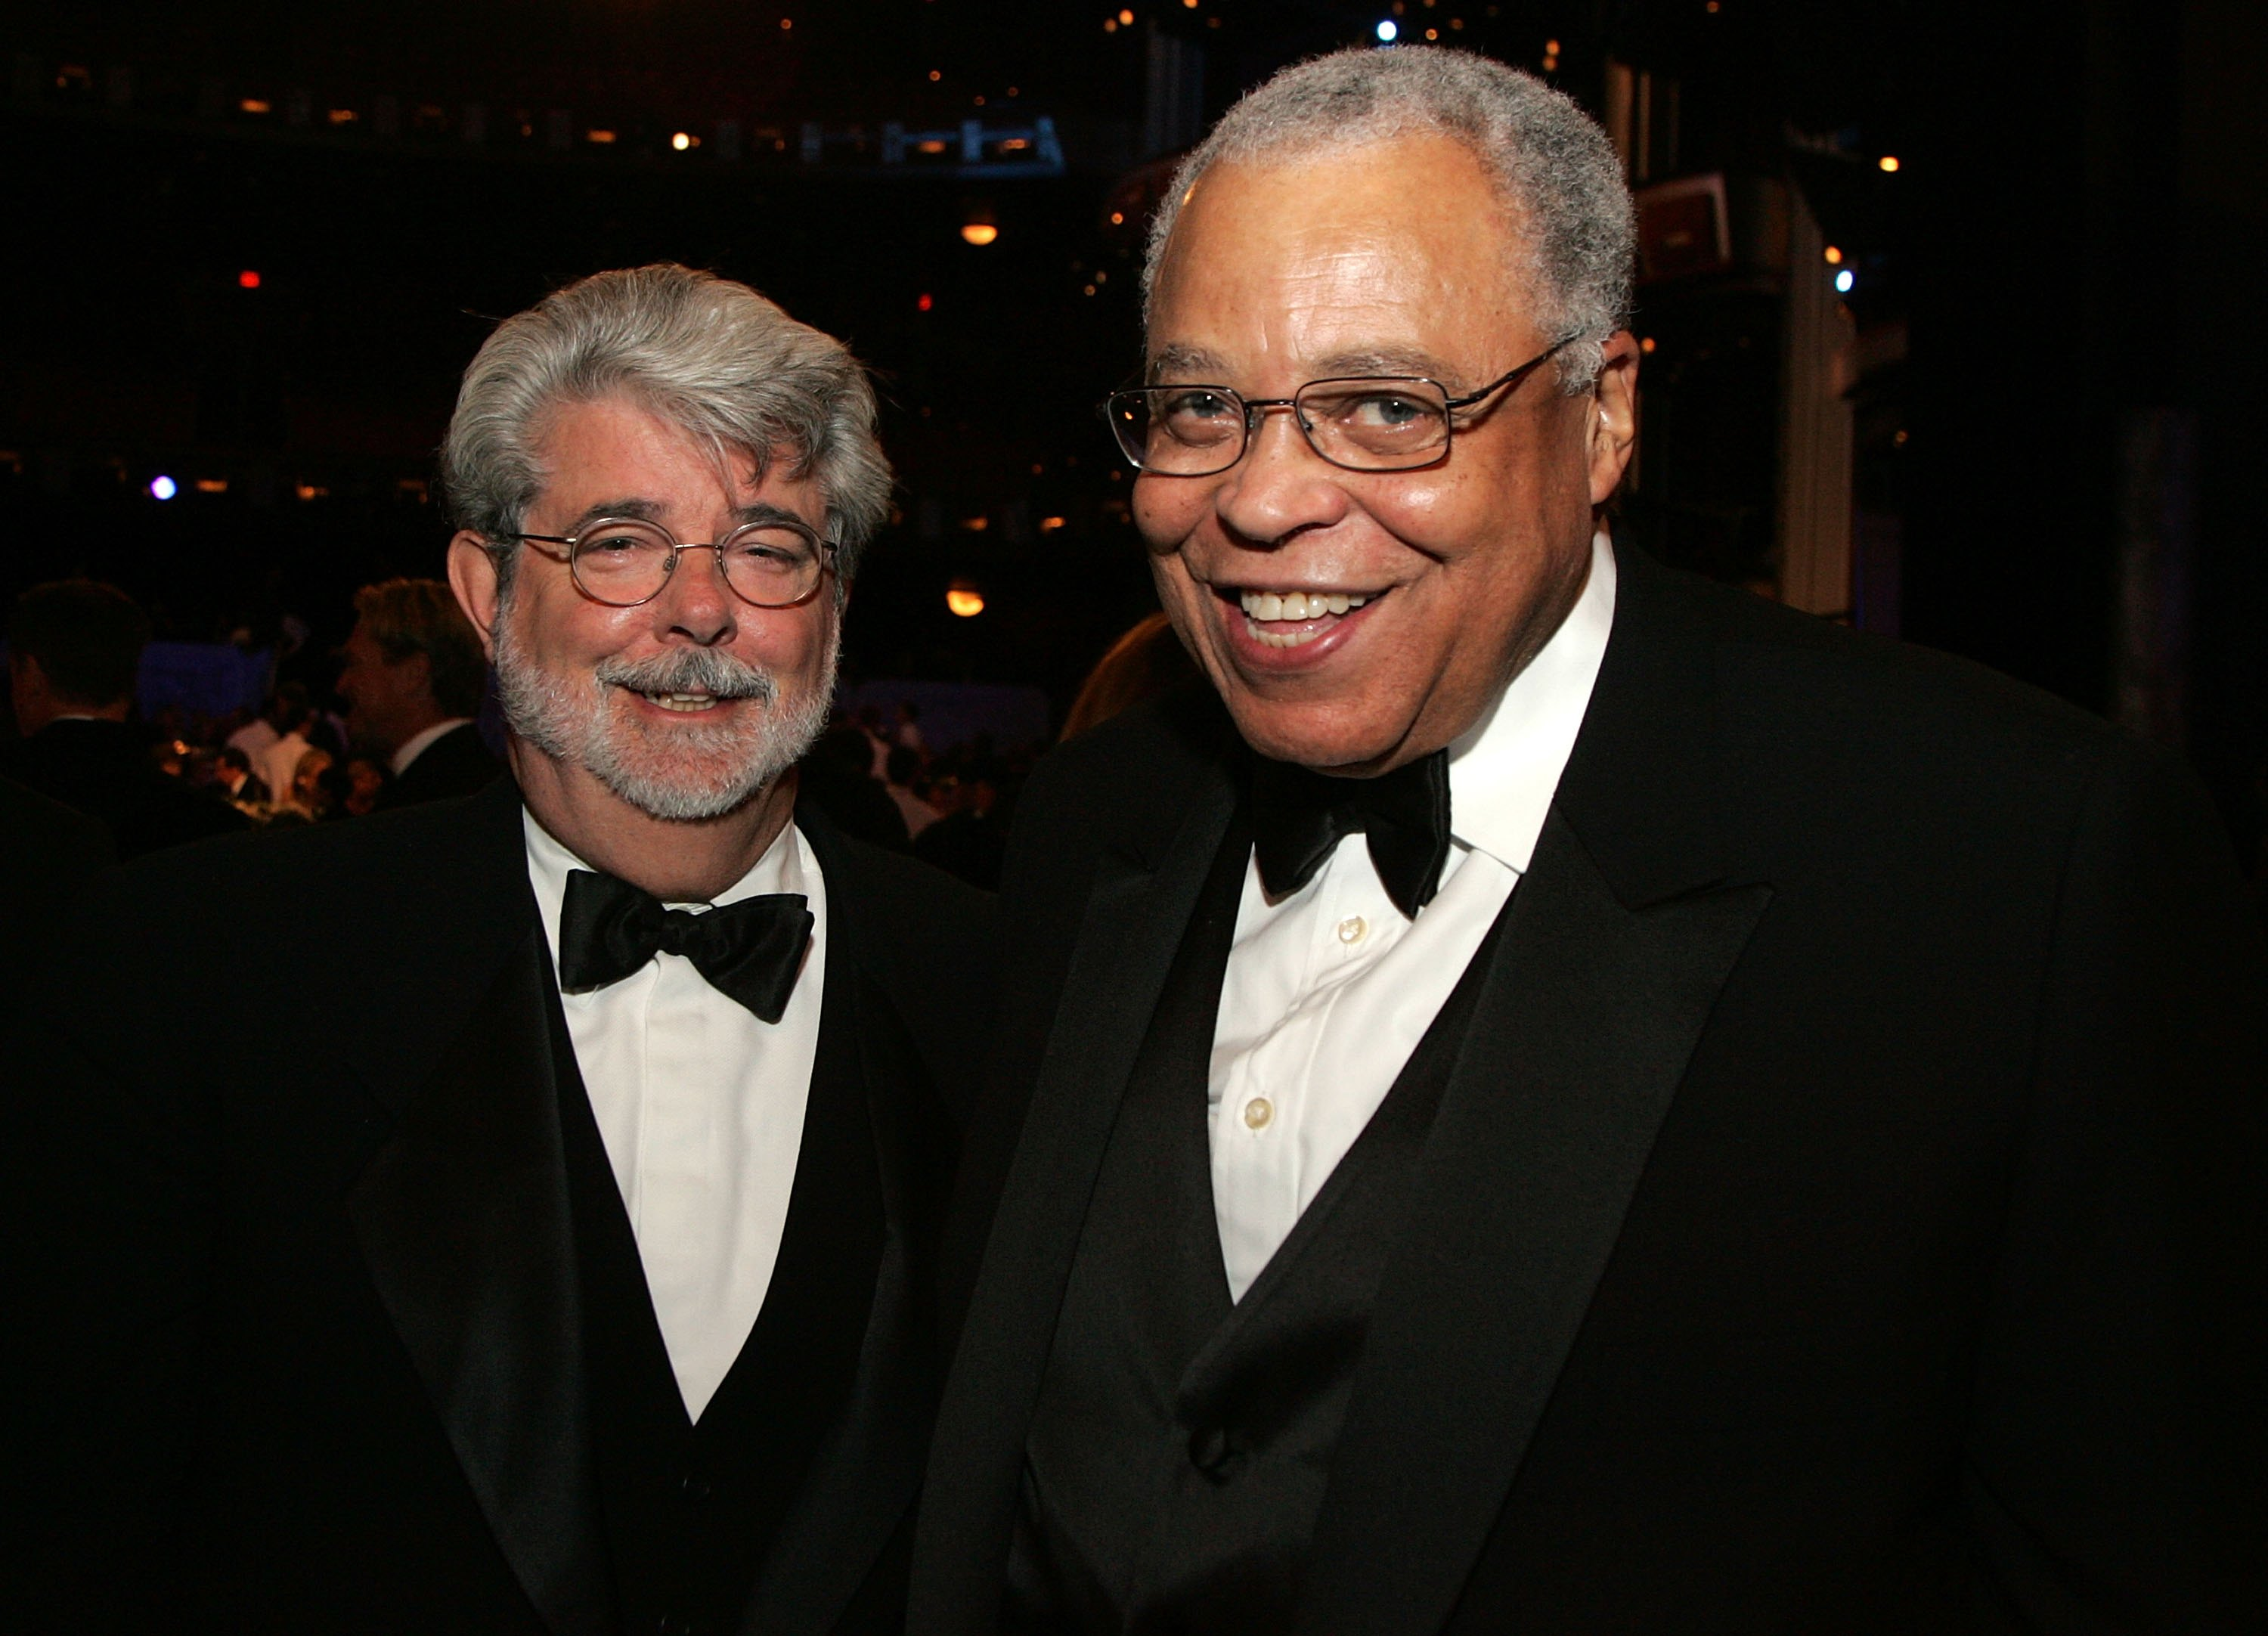 HOLLYWOOD, CA - JUNE 08: Director George Lucas and actor James Earl Jones pose during the 34th AFI Life Achievement Award tri